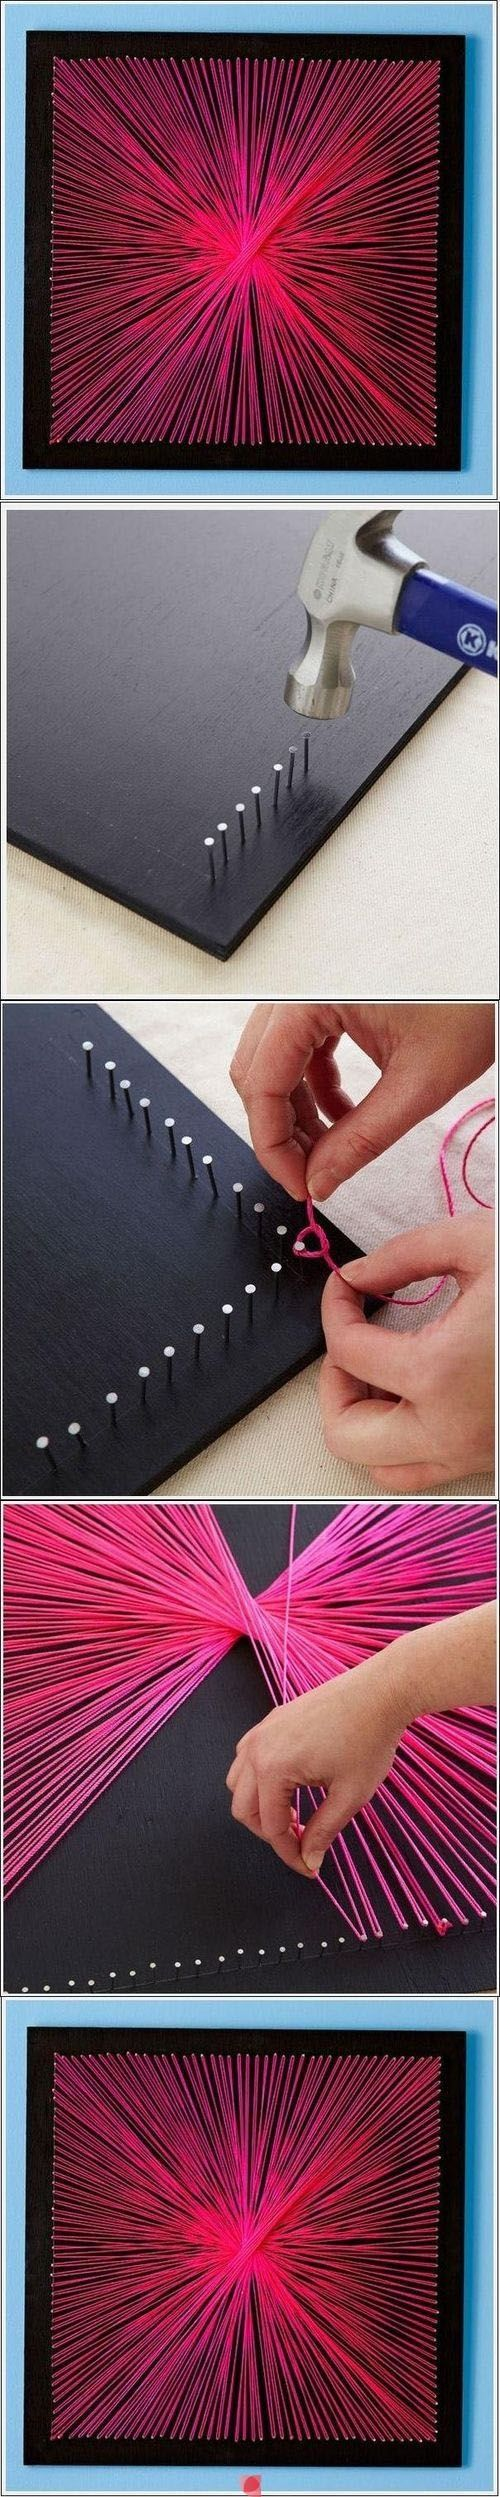 Good activity to try as an adult and can become a very cool decoration for house, apartment or dorm.